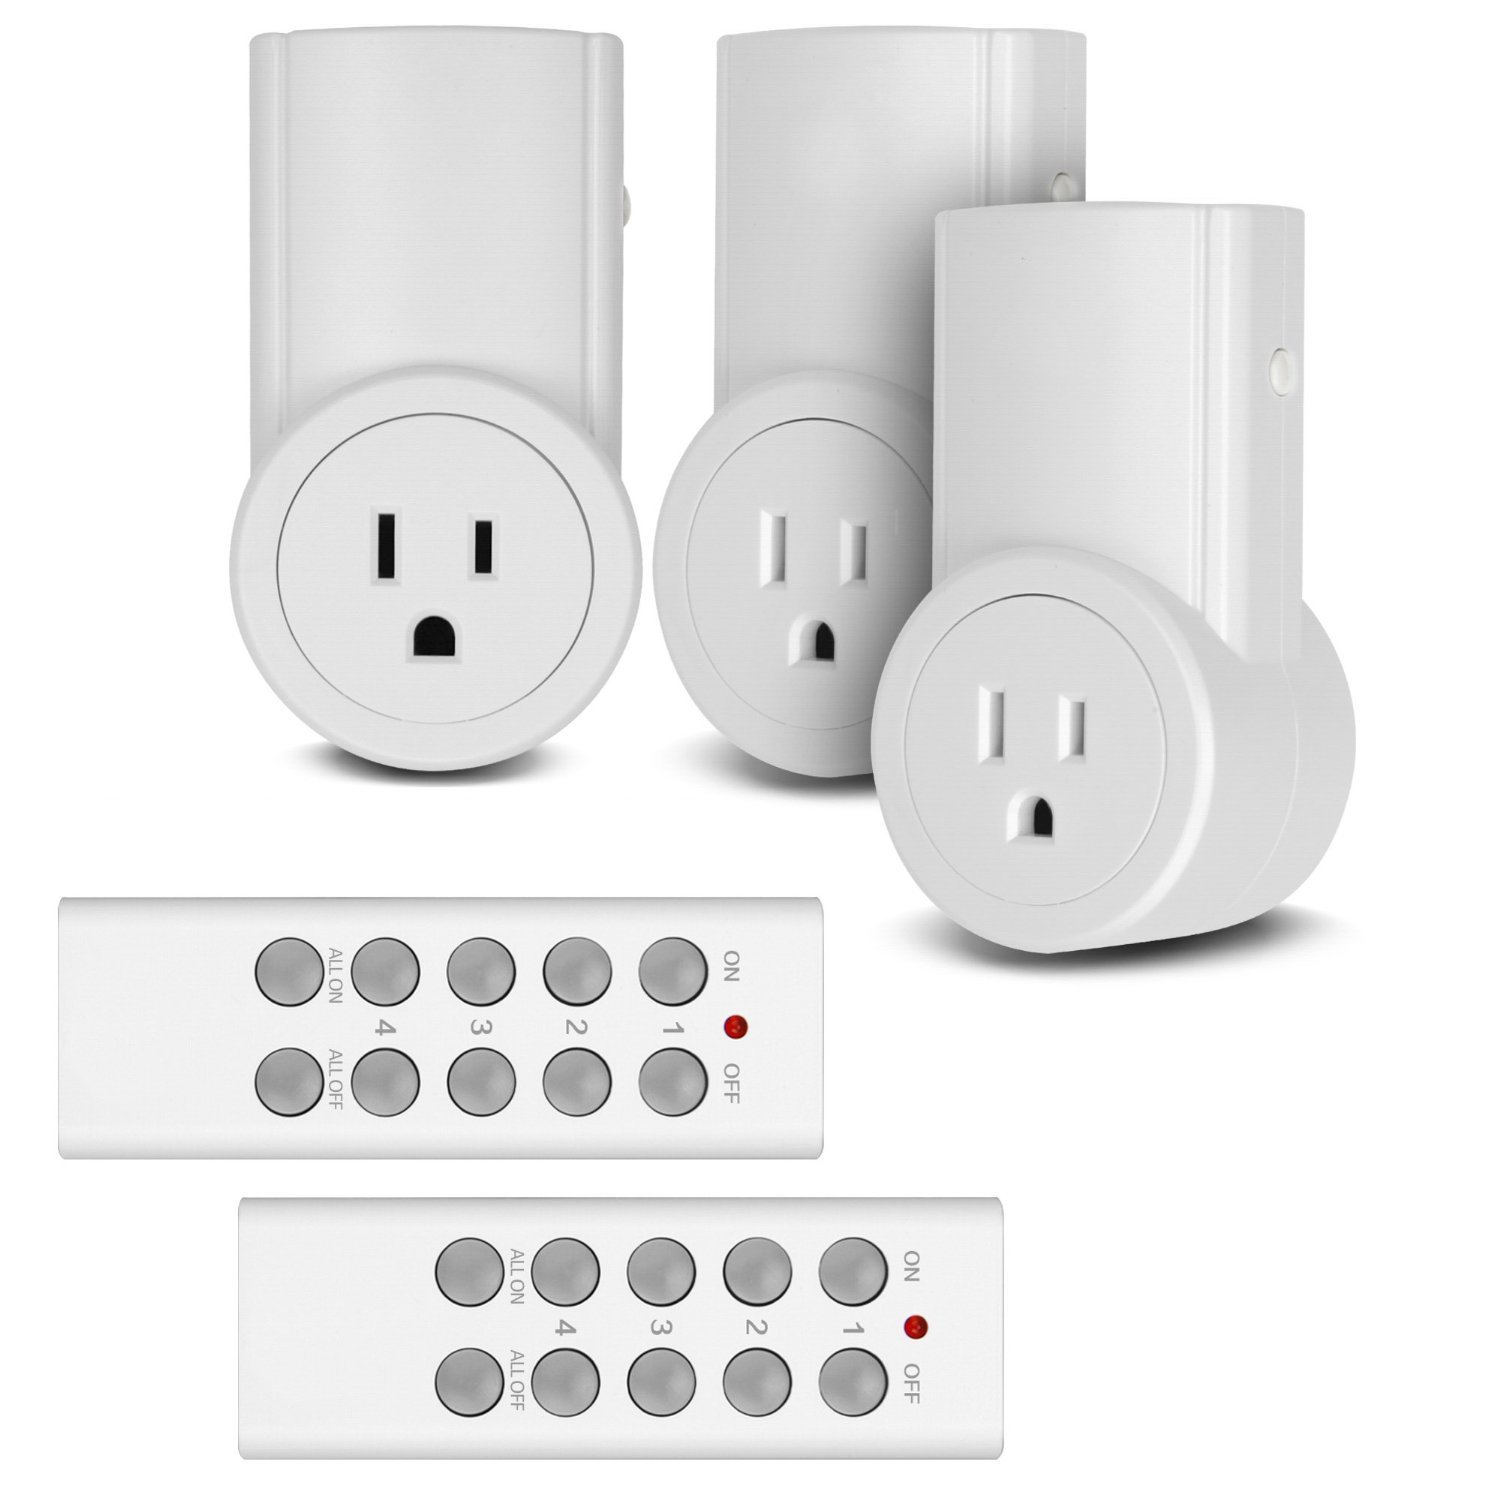 Etekcity Remote Control Outlet Wireless Light Switch for Household Appliances, Unlimited Connections, FCC ETL Listed, White (Learning Code, 3Rx-2Tx)